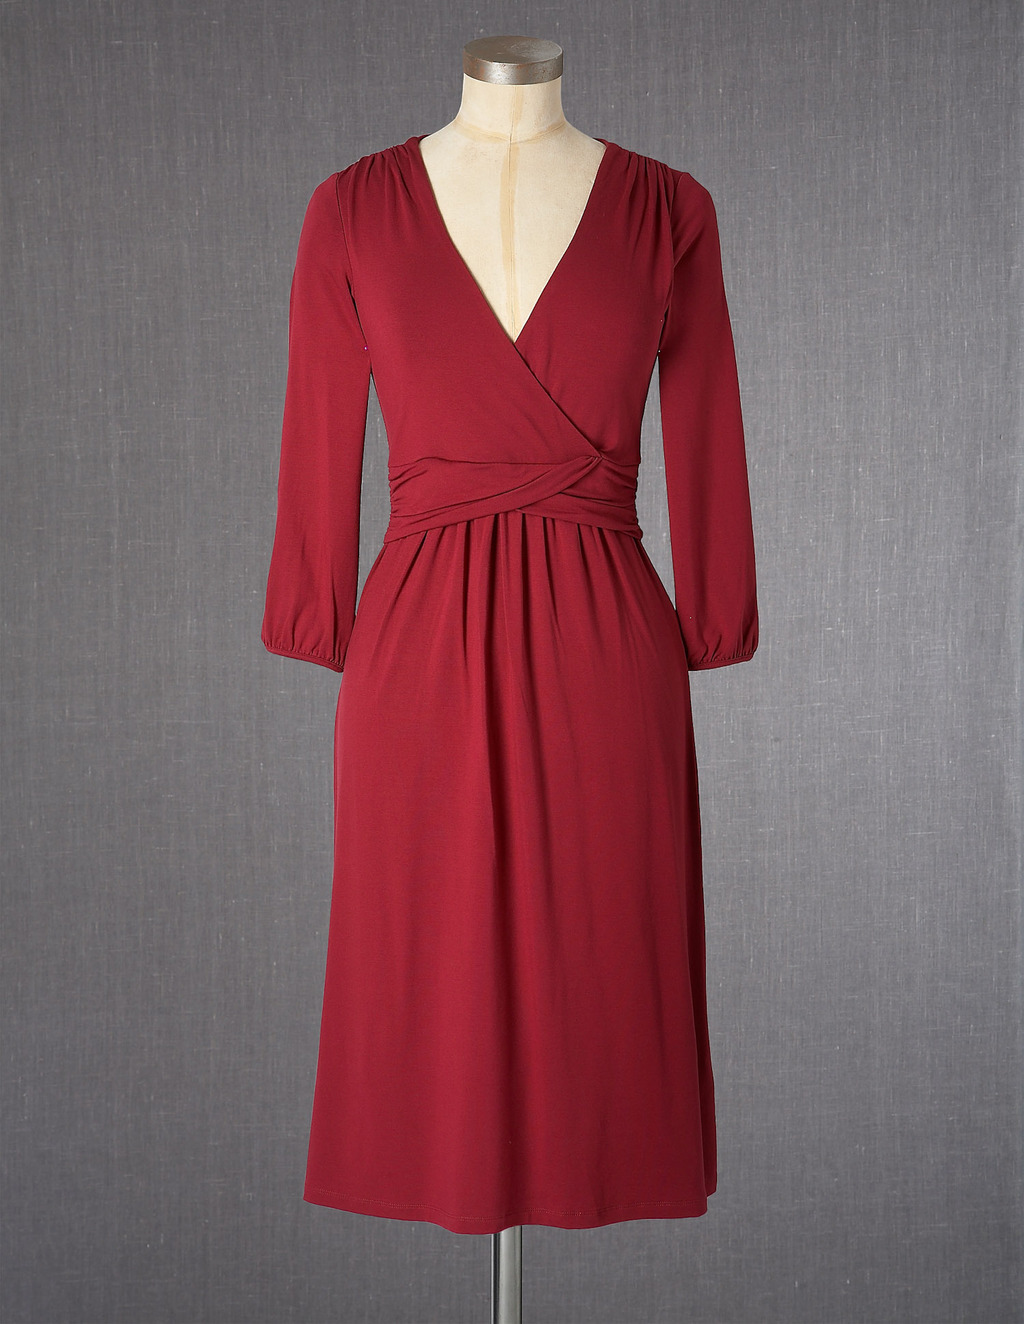 Edie Dress - style: faux wrap/wrap; neckline: v-neck; fit: fitted at waist; pattern: plain; waist detail: twist front waist detail/nipped in at waist on one side/soft pleats/draping/ruching/gathering waist detail; predominant colour: burgundy; occasions: casual; length: on the knee; fibres: viscose/rayon - stretch; sleeve length: 3/4 length; sleeve style: standard; pattern type: fabric; texture group: jersey - stretchy/drapey; season: a/w 2013